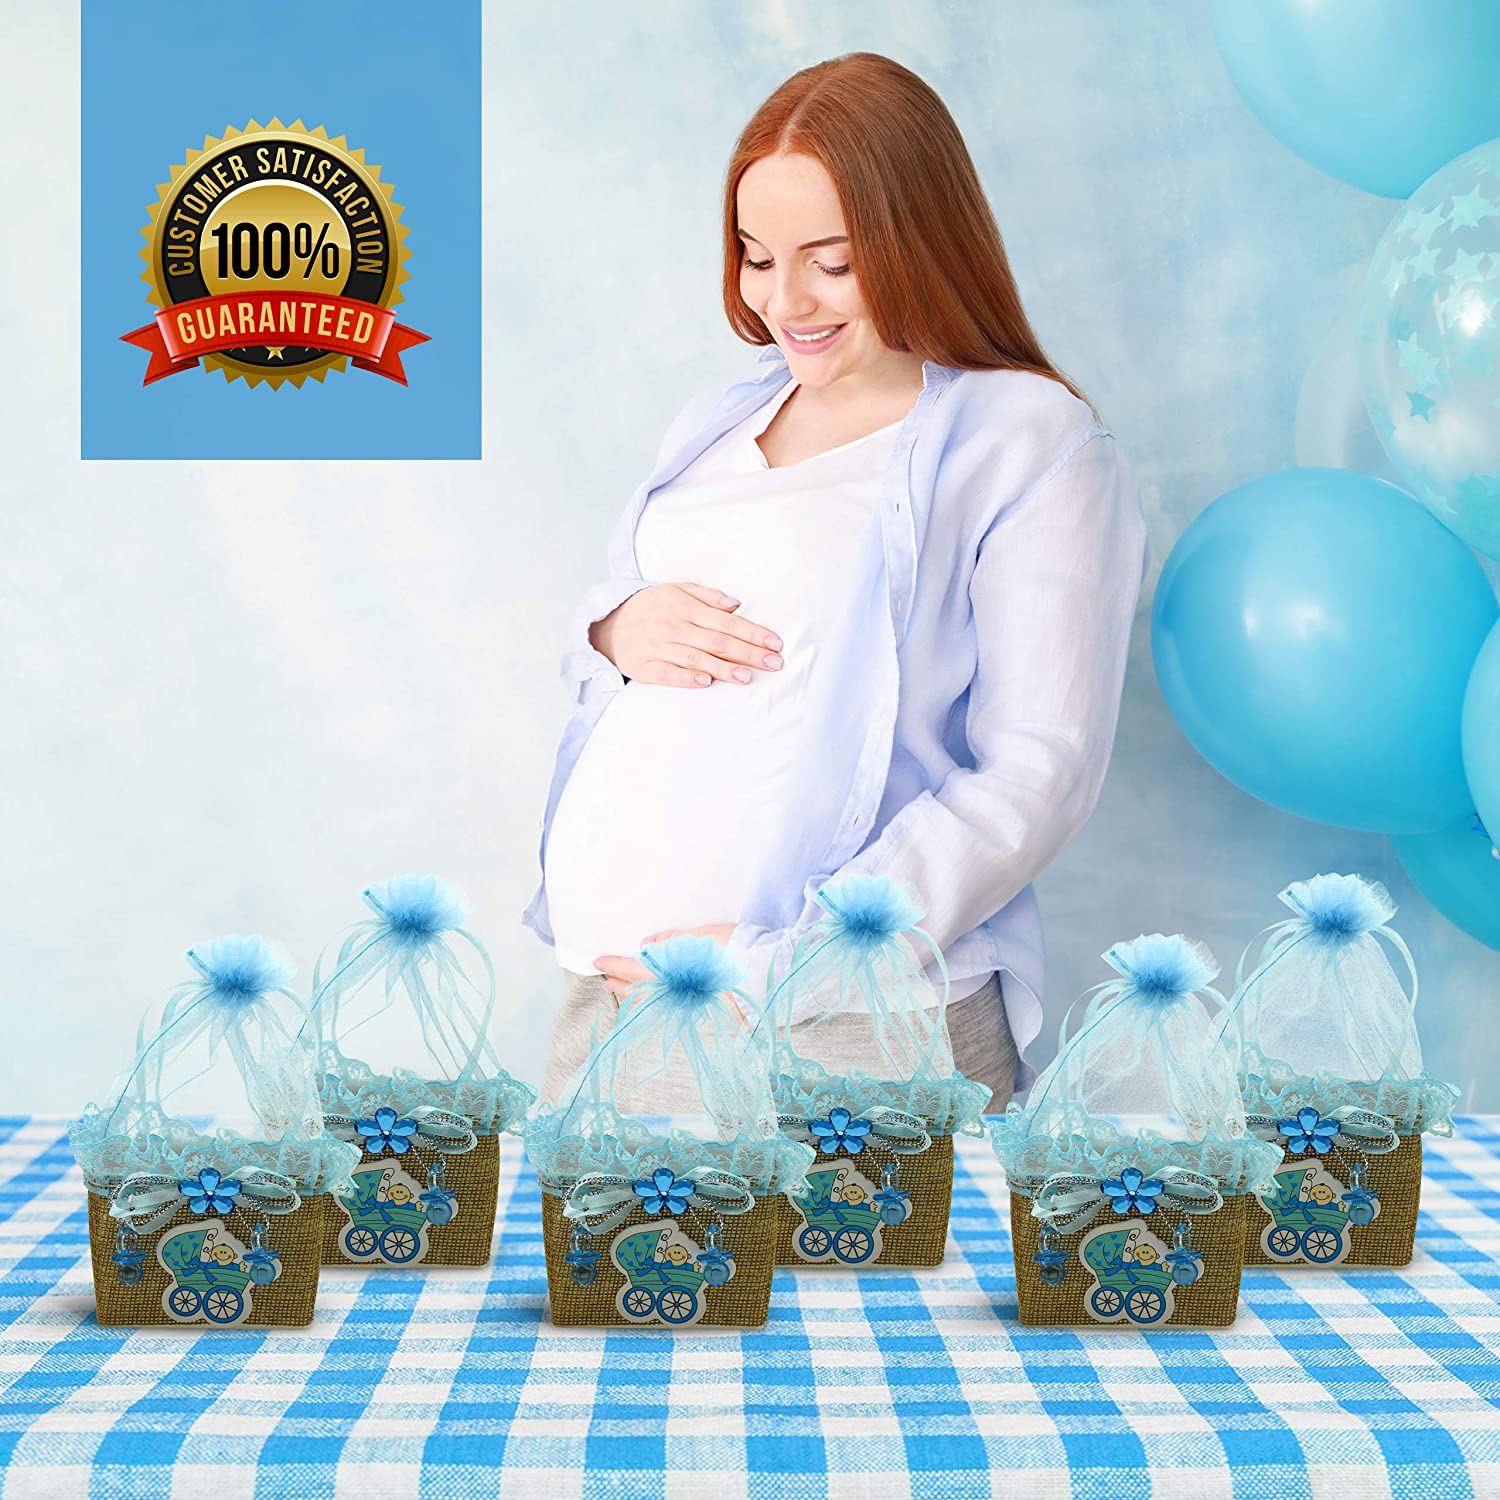 and Gifts Prizes 6 Pack Sparkly Carriage Your Favorite Moments Mini Baskets: Baby Boy Shower Favors for Candy Blue Party Favor Boxes with Sheer Drawstring Bags